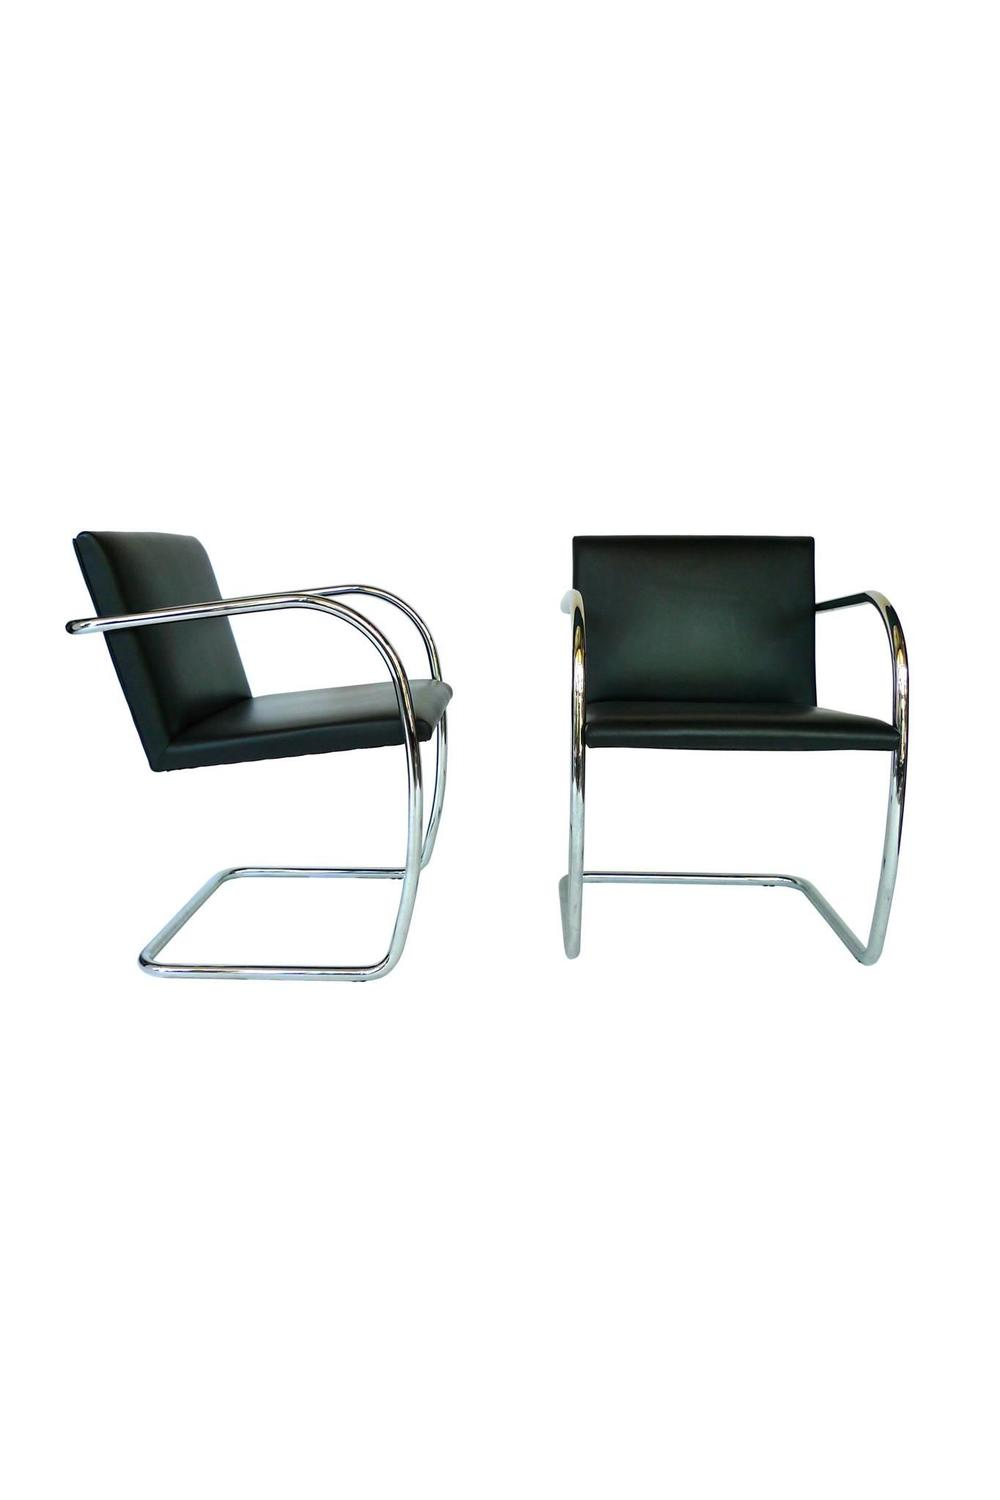 pair of mies van der rohe brno chairs at 1stdibs. Black Bedroom Furniture Sets. Home Design Ideas